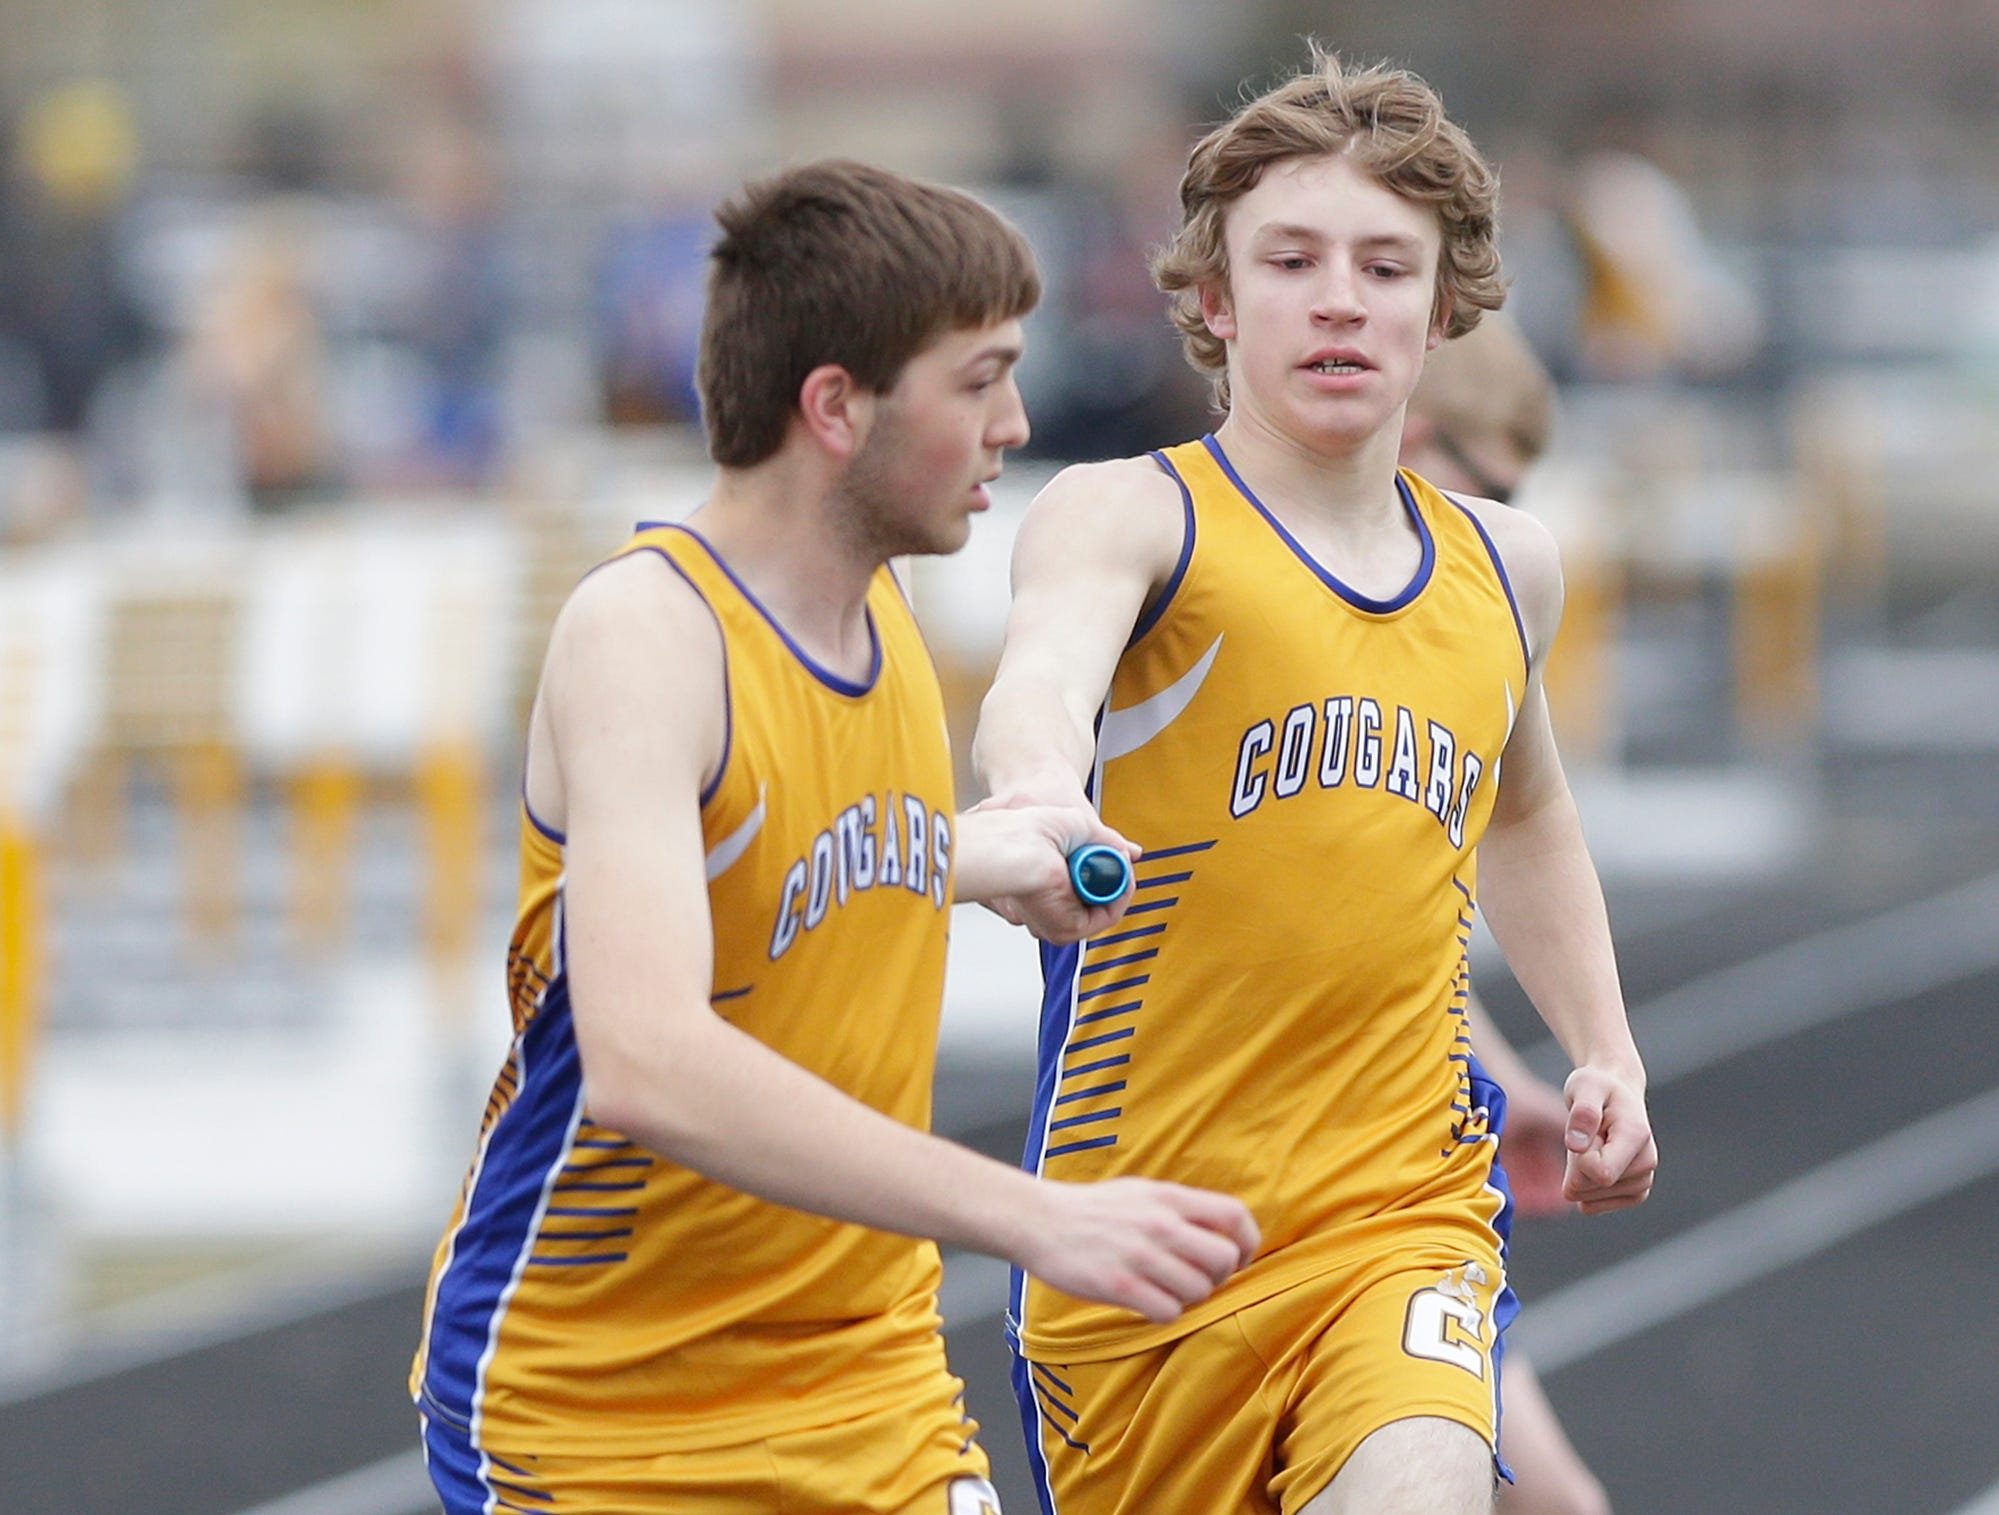 Connor Hamm of Campbellsport High School grabs the baton from Jerid Waddle in the 4x800 meter relay Friday, May 3, 2019 at the Waupun High School Invitational track and field meet. Doug Raflik/USA TODAY NETWORK-Wisconsin